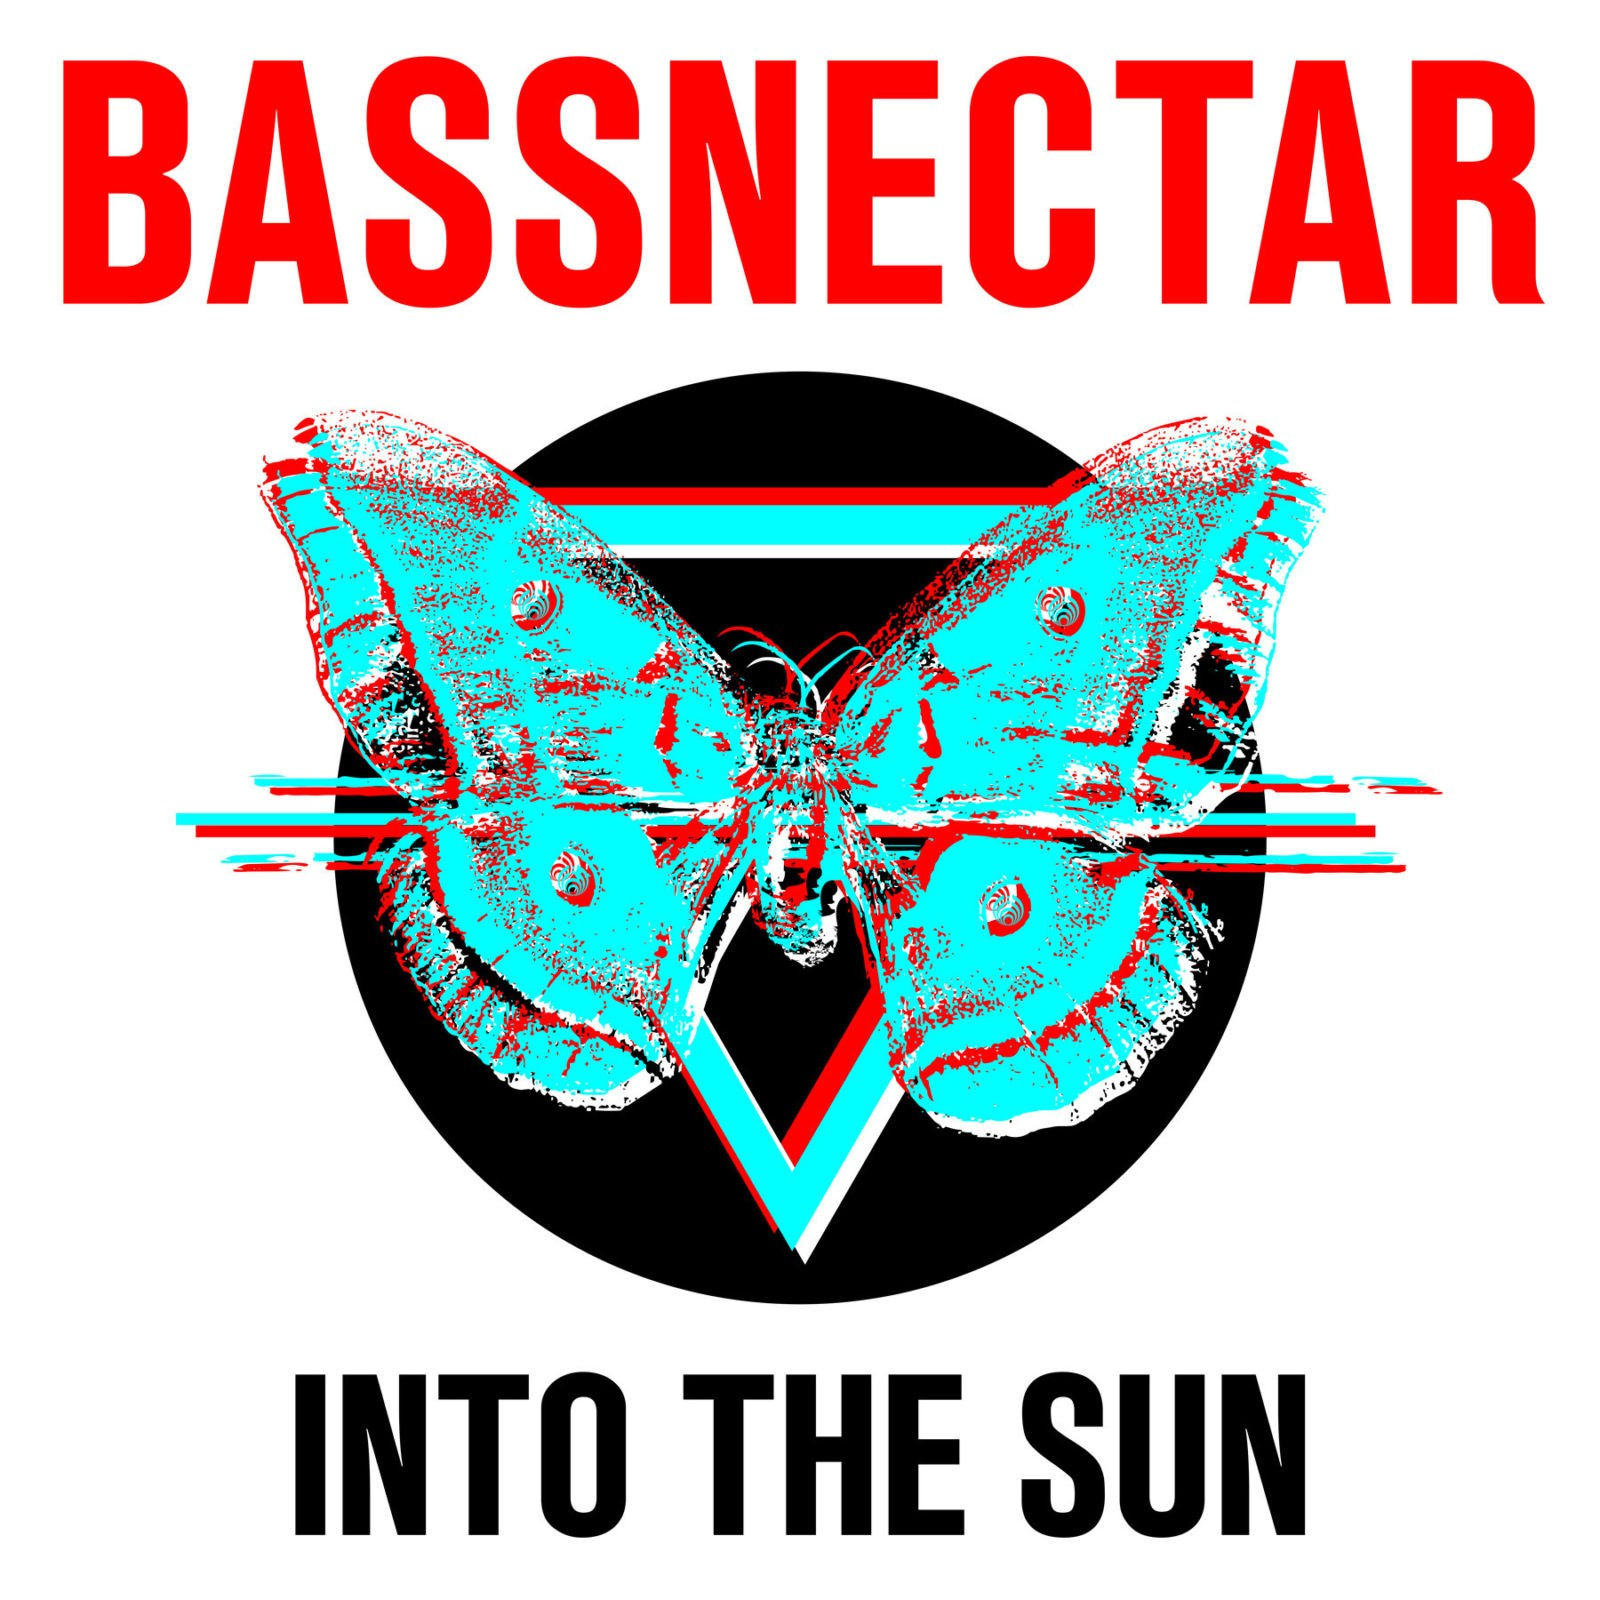 BASSNECTAR_INTO-THE-SUN_1800x1800_2048x2048